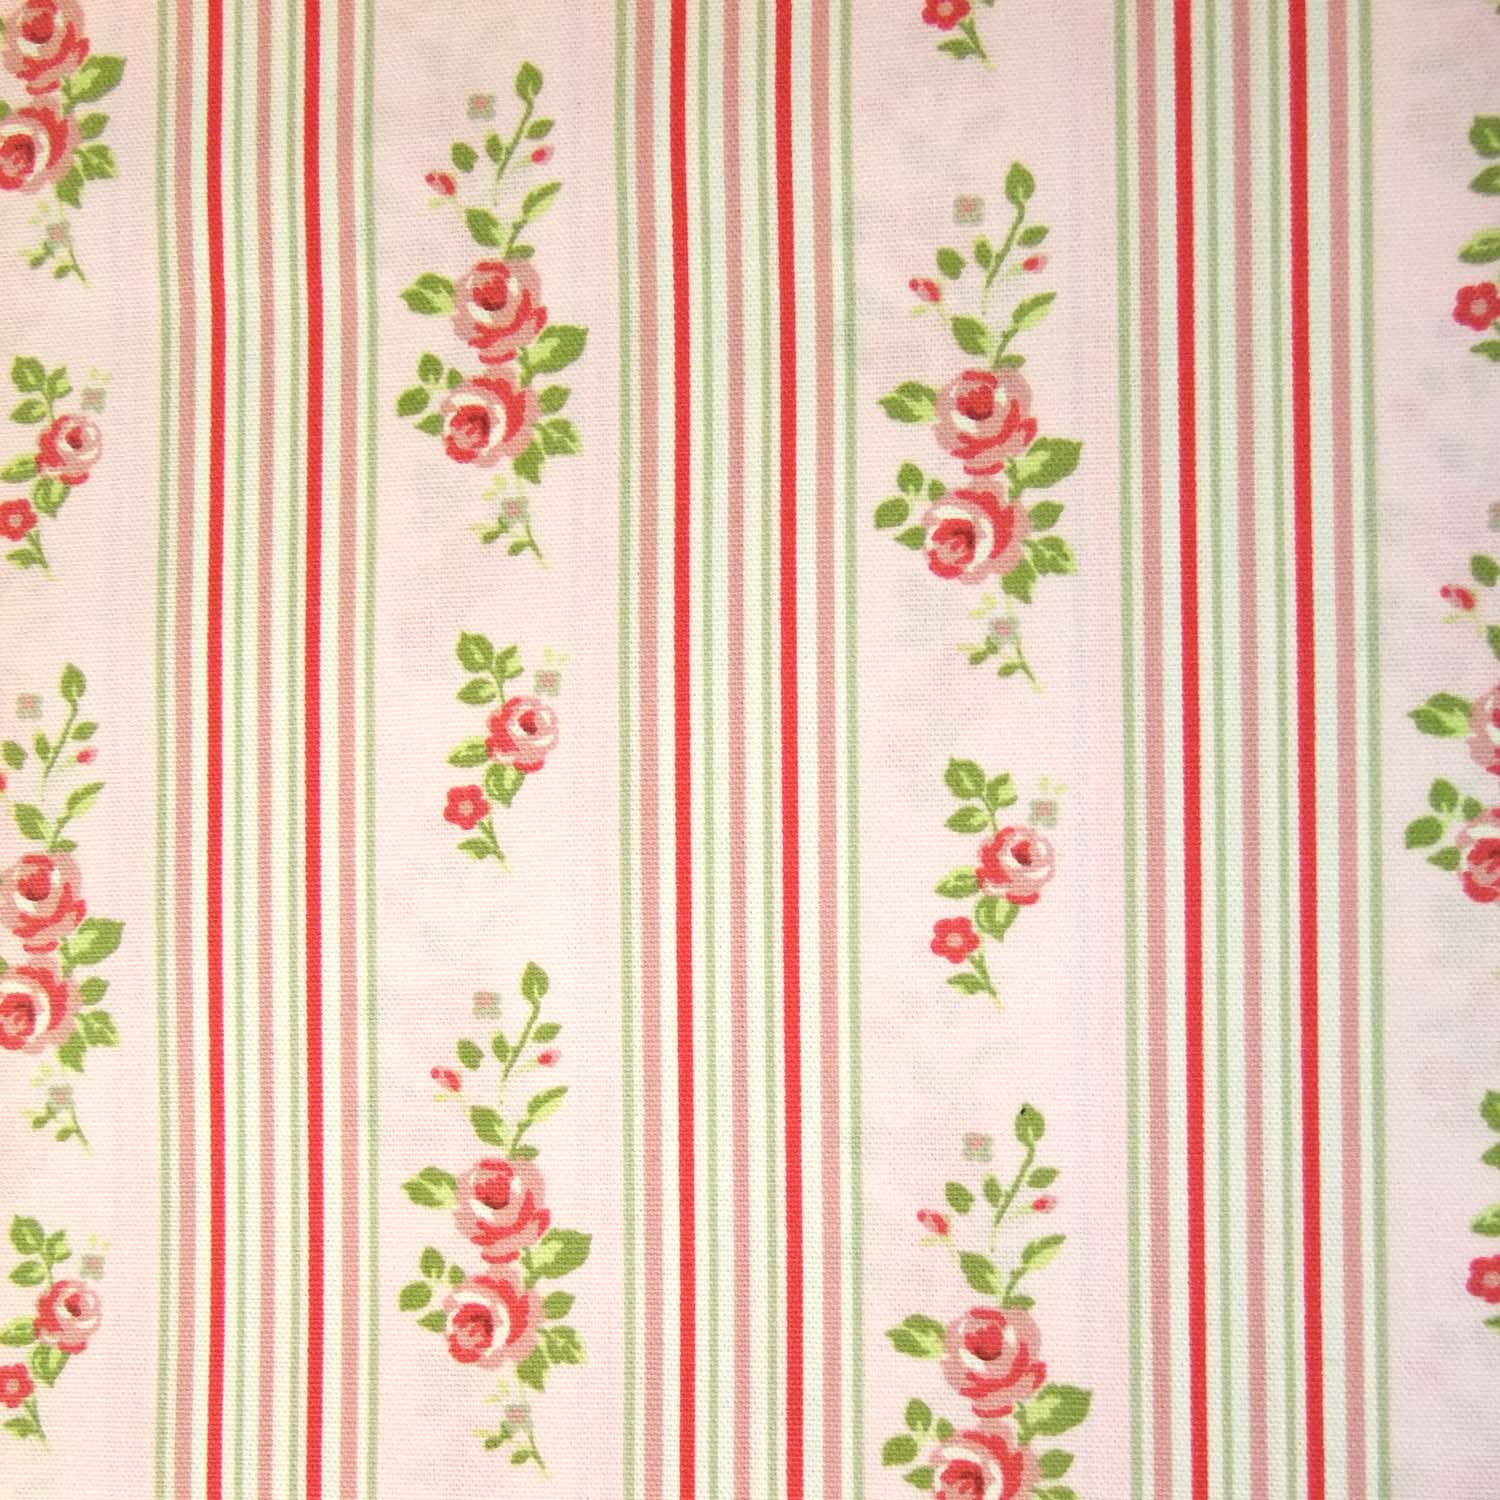 Esdesign: Feature Fabric Friday: Vintage Classic Prints